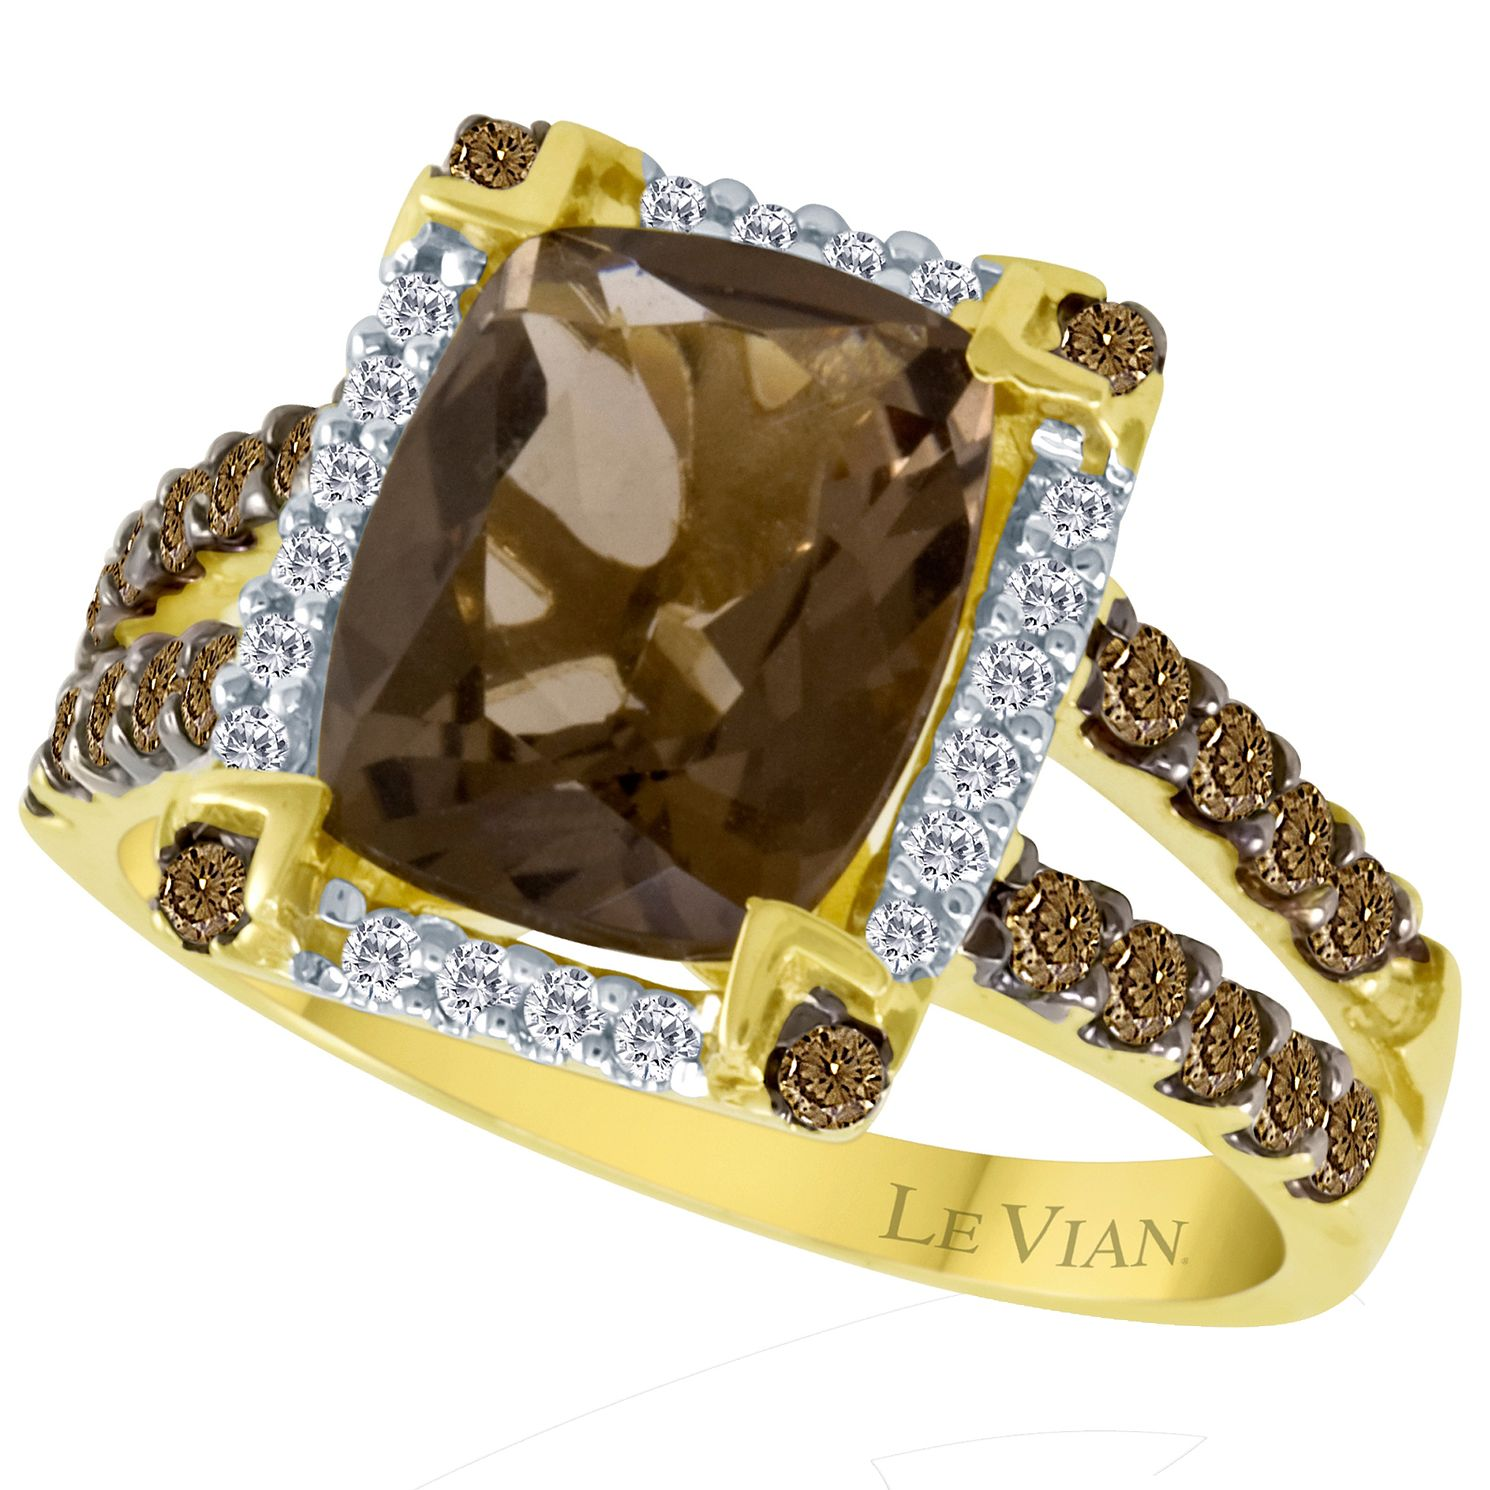 Le Vian 14ct Honey Gold Diamond & Quartz Ring - Product number 3574660